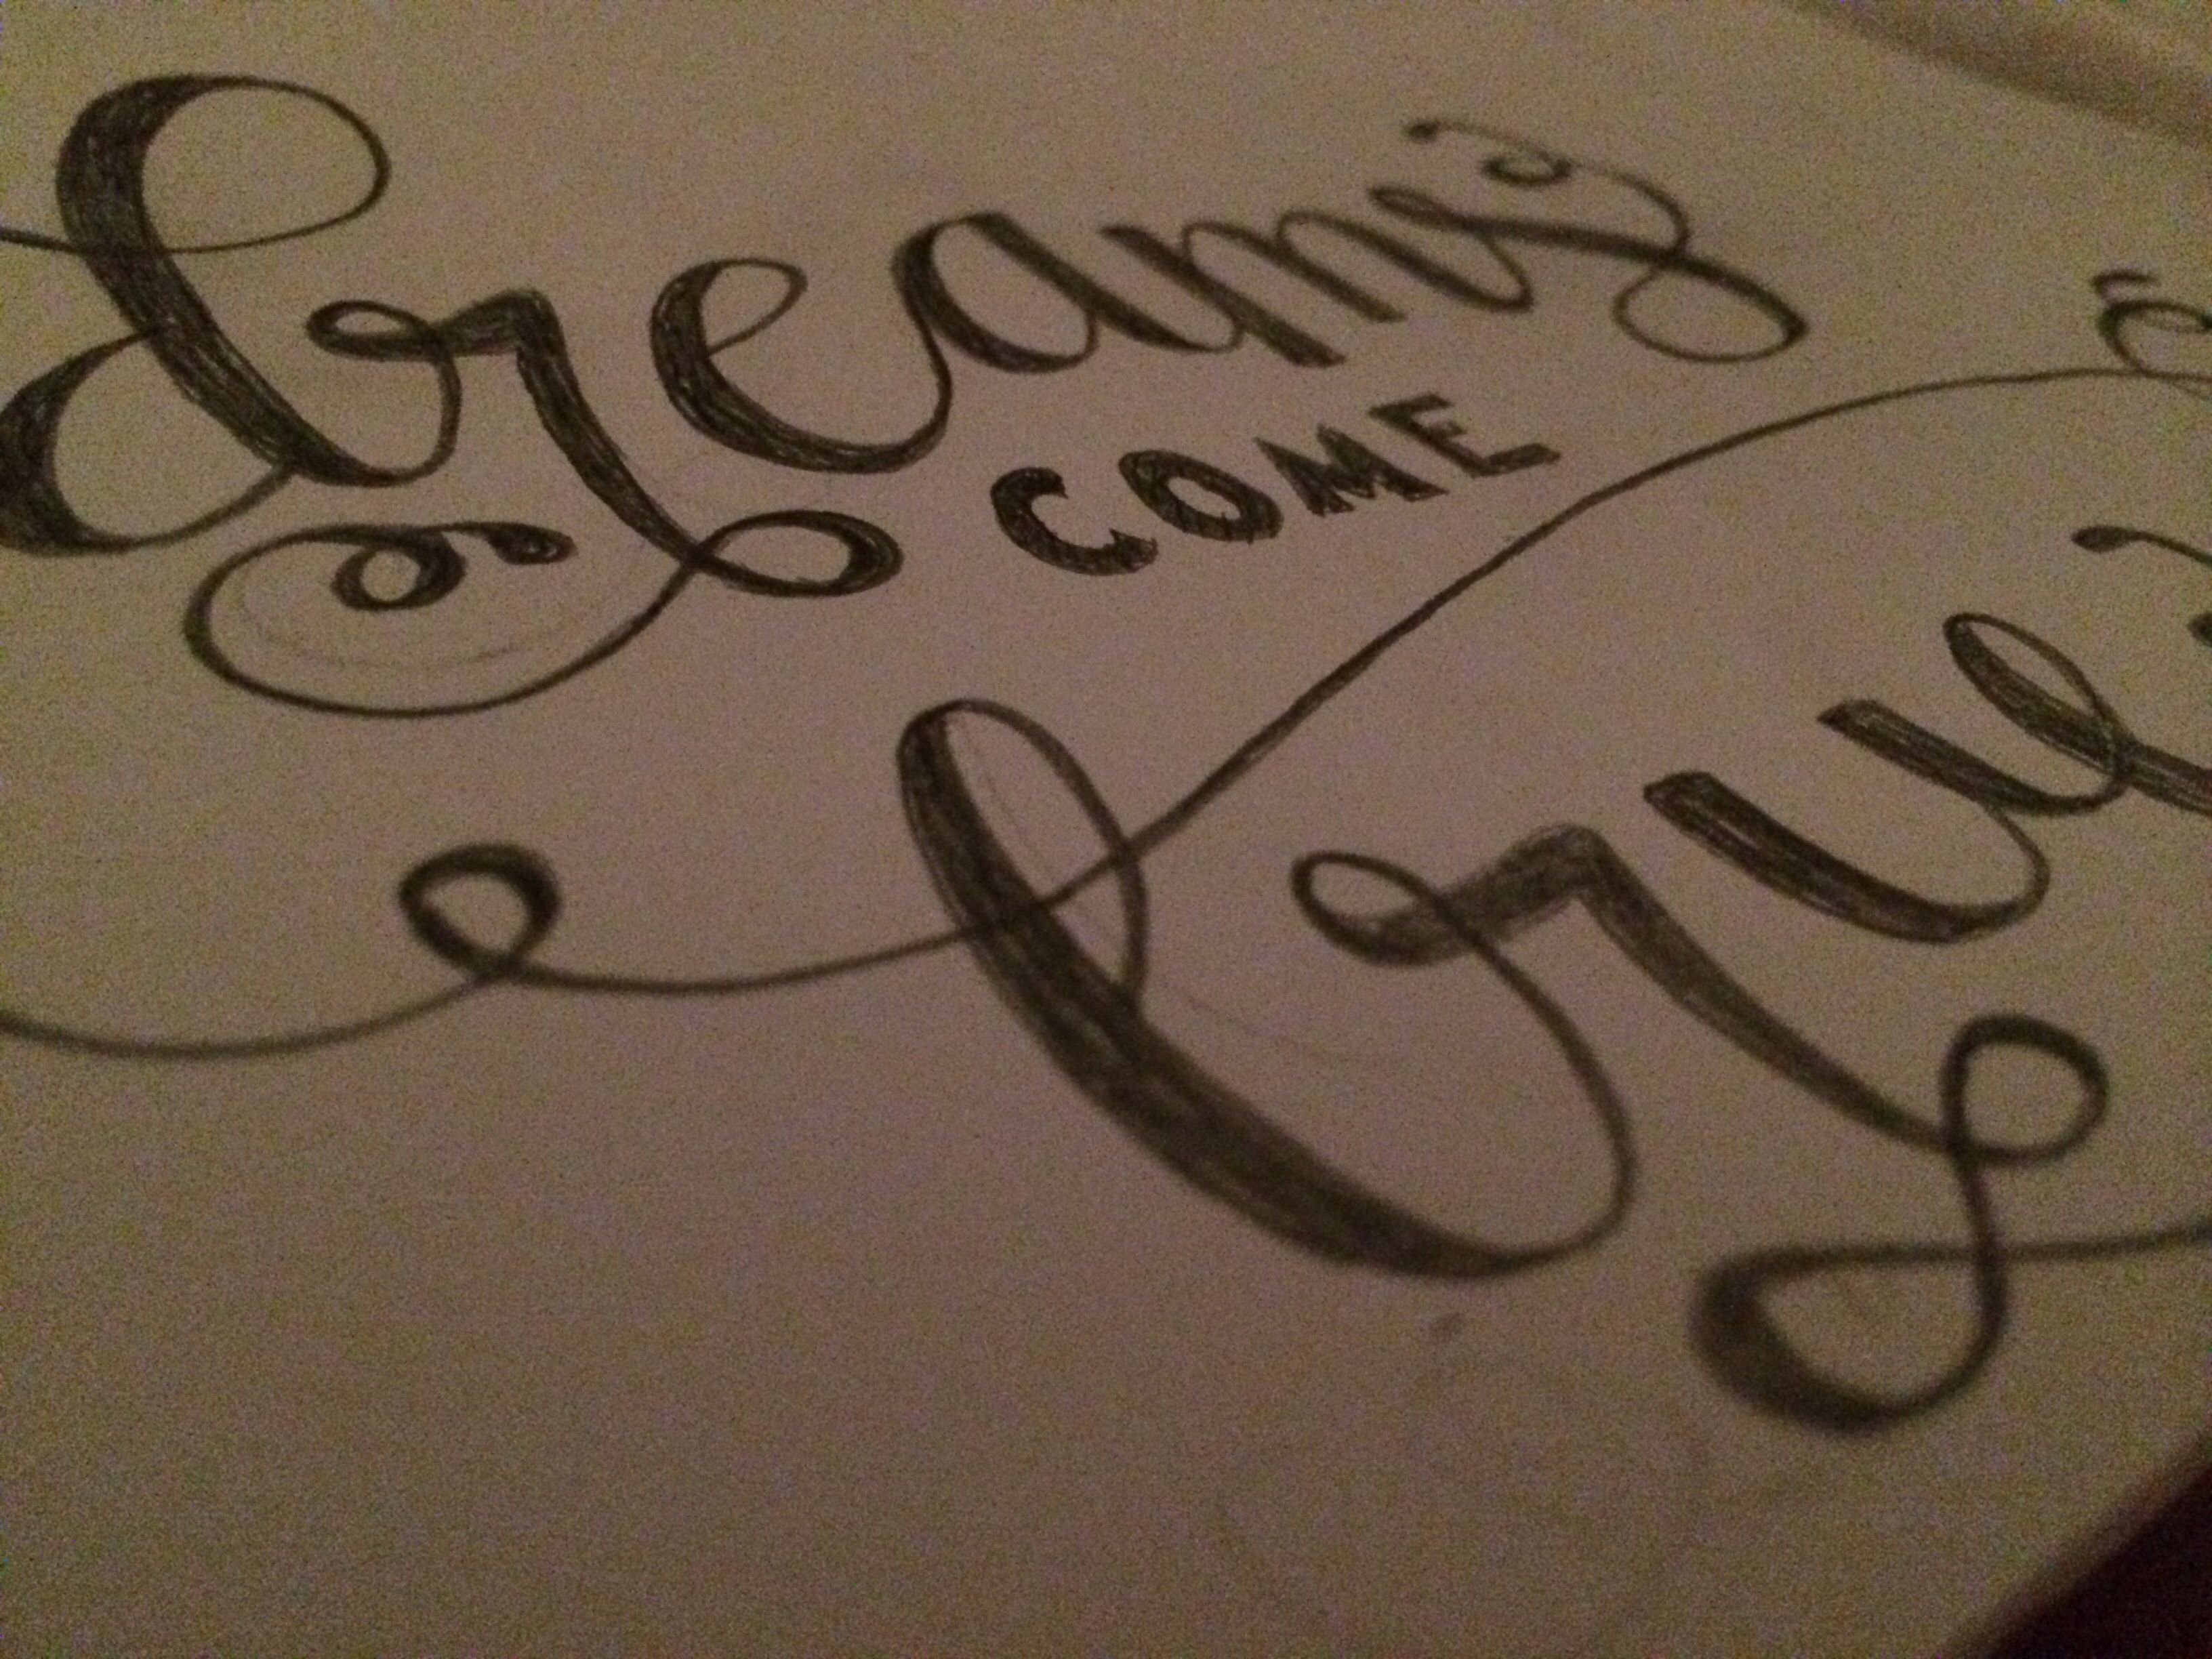 Some Of My Work Dreams Come True Handlettering In